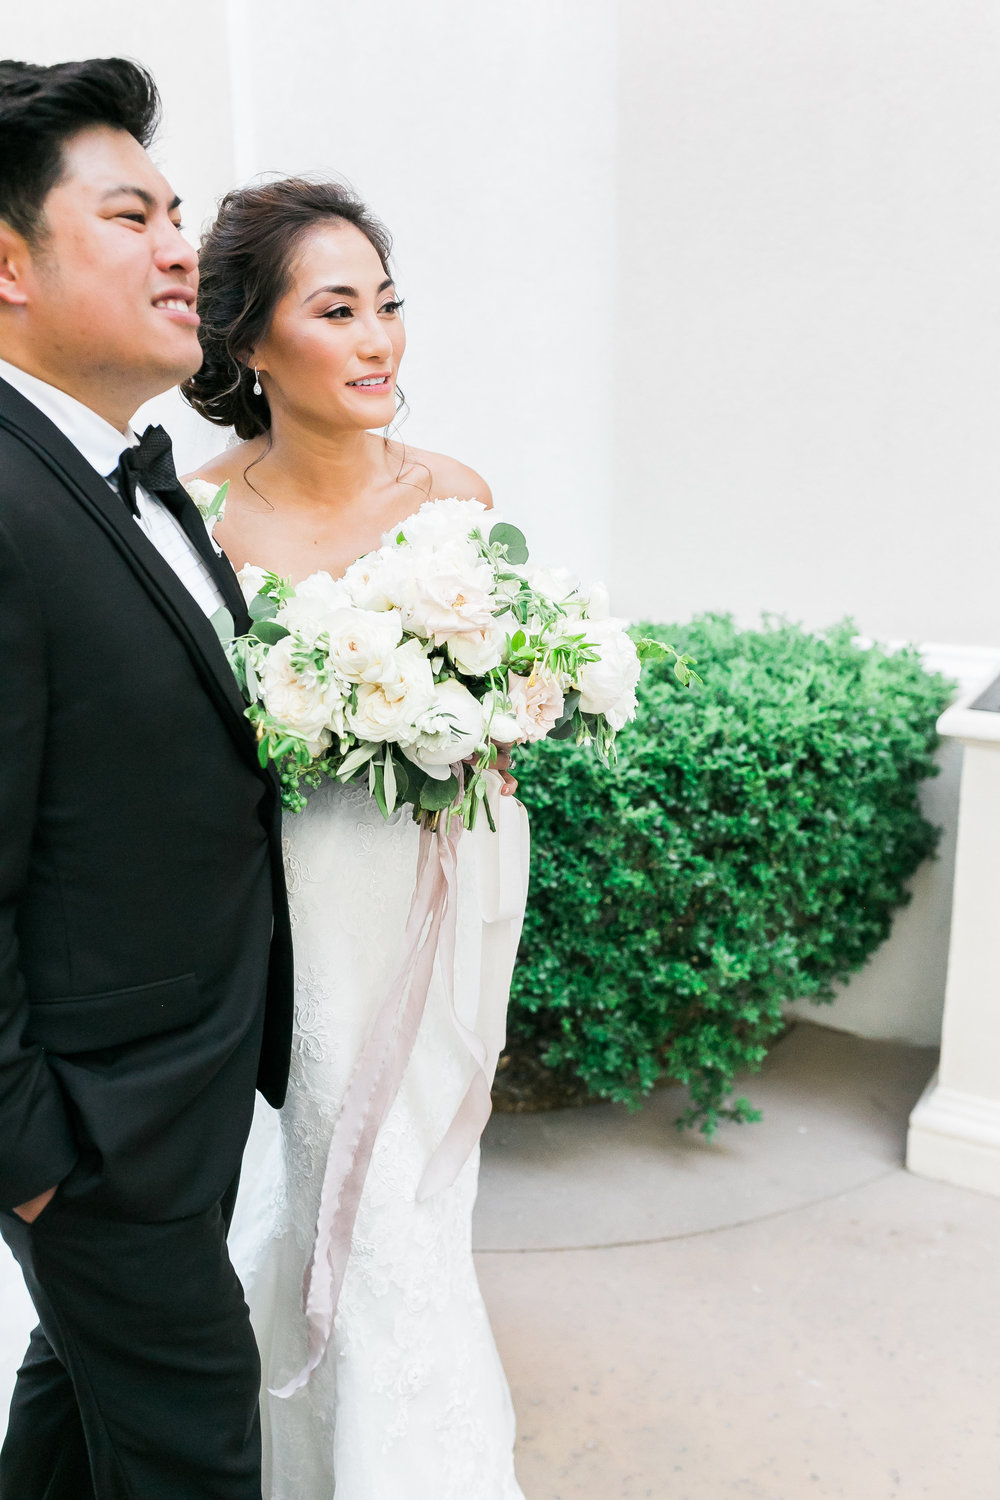 Waldorf Astoria Las Vegas wedding